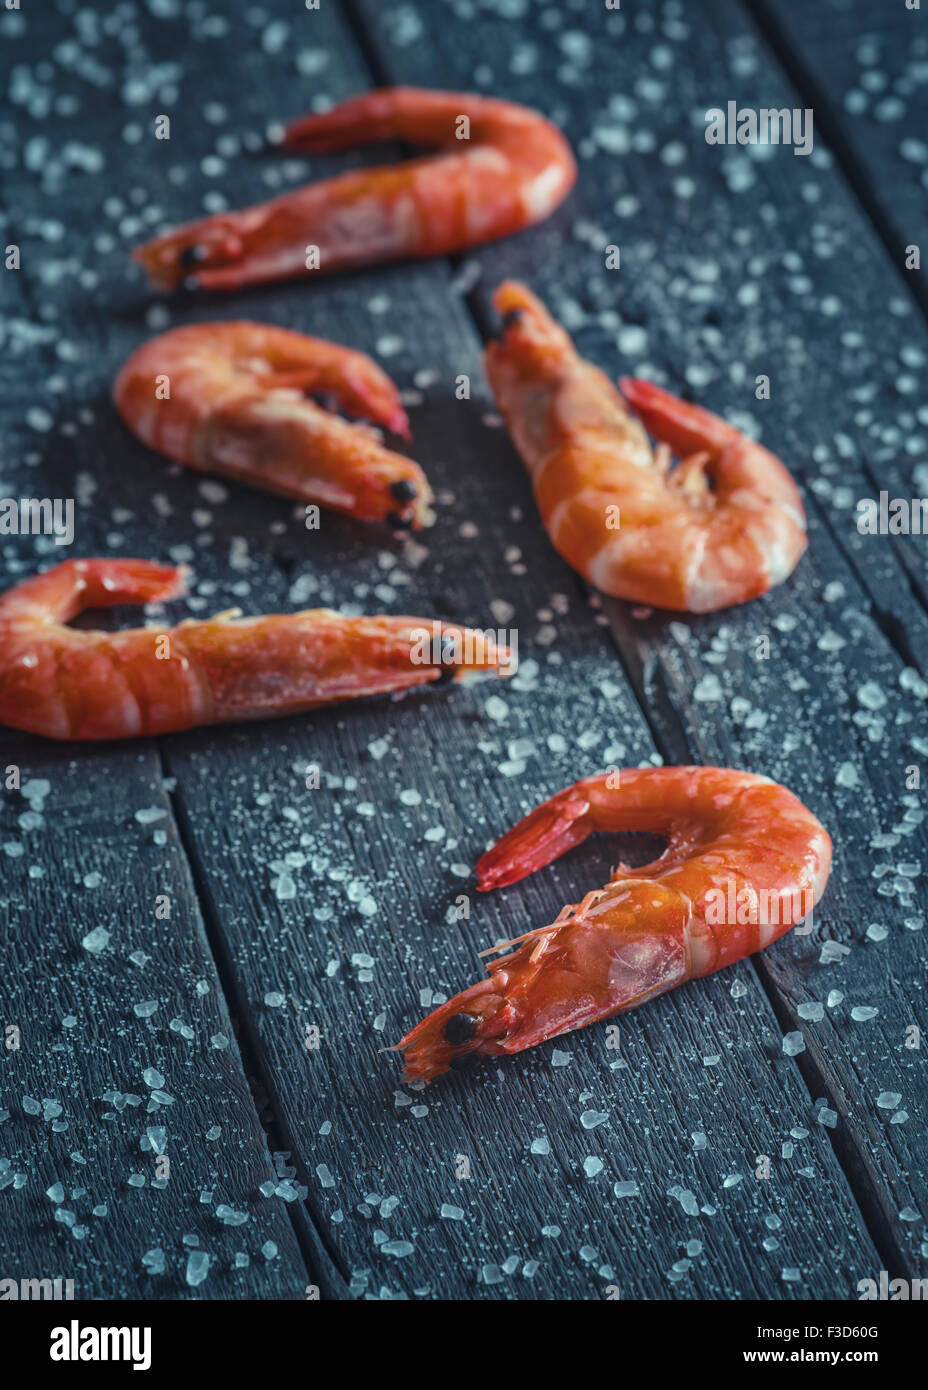 Some freshly caught prawns on a rustic table with rock salt - Stock Image